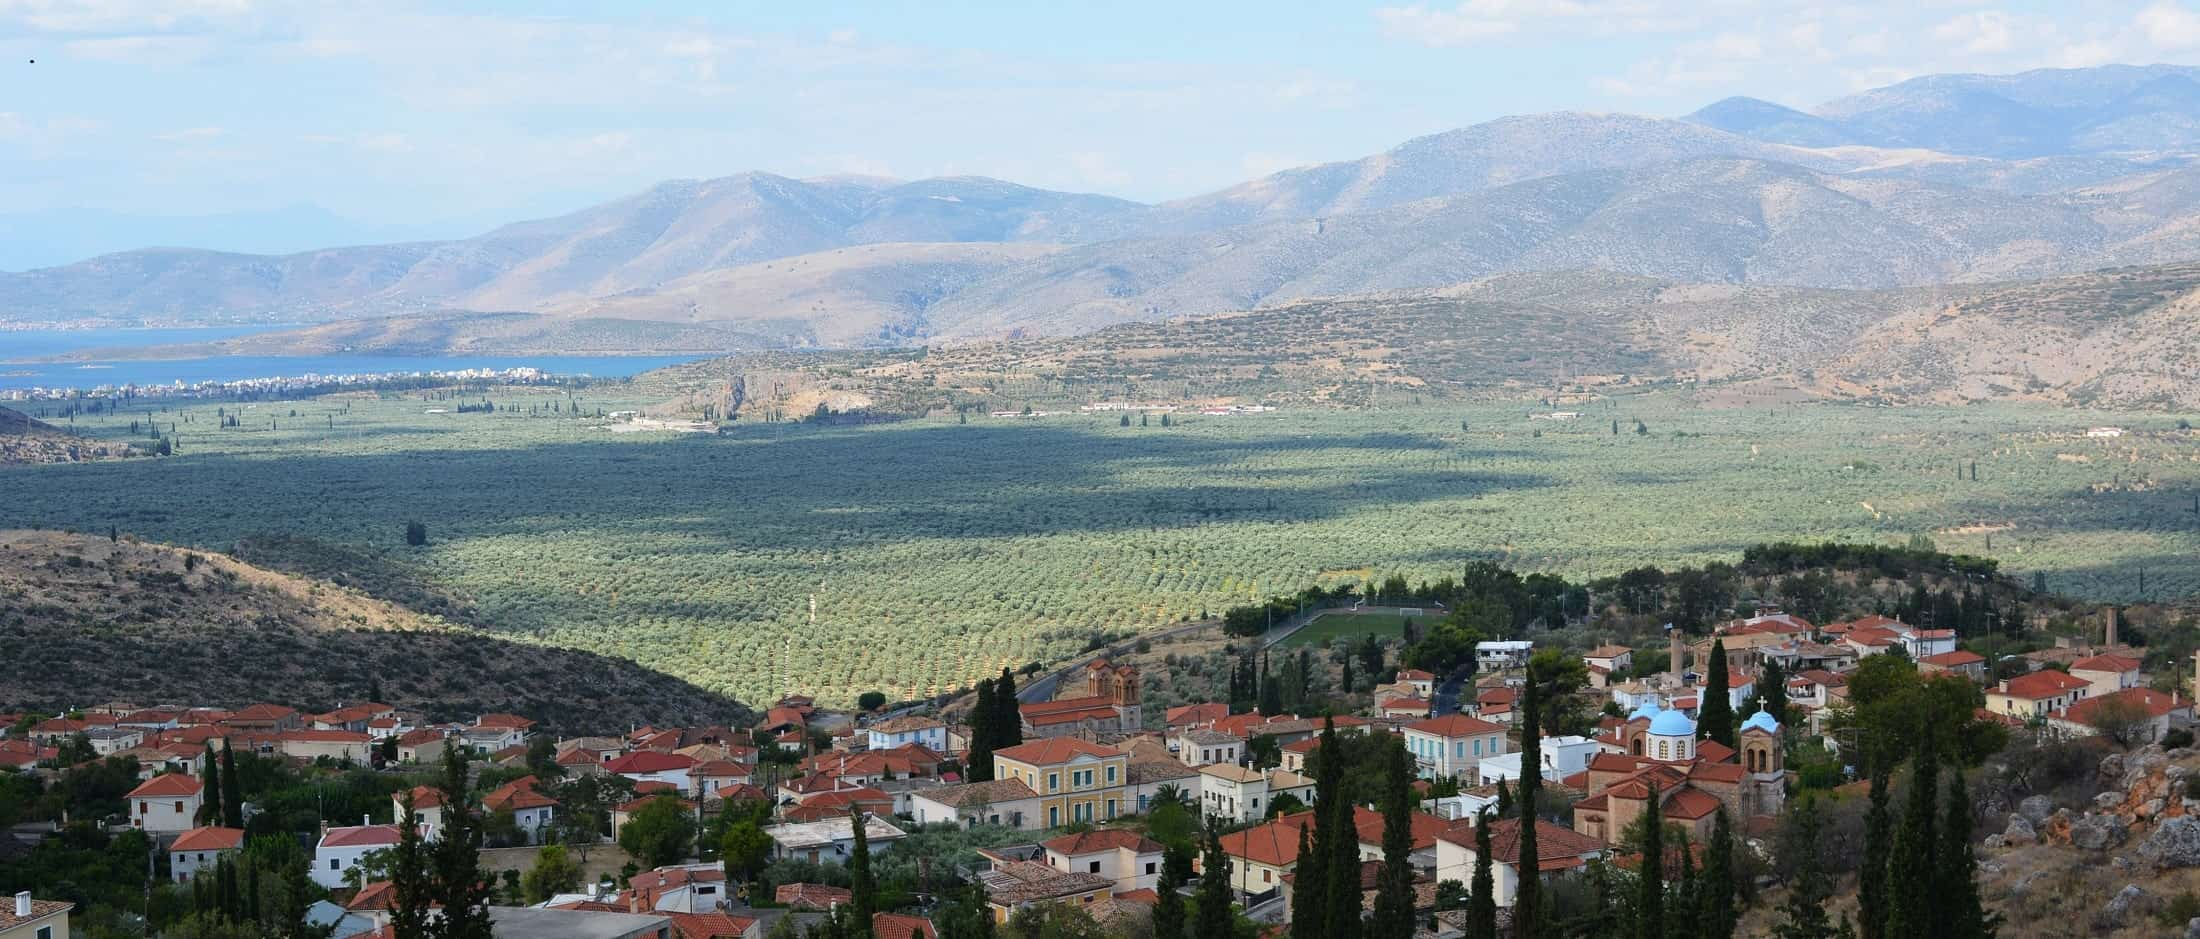 view of olive trees from central greece - our story Definitely Greece